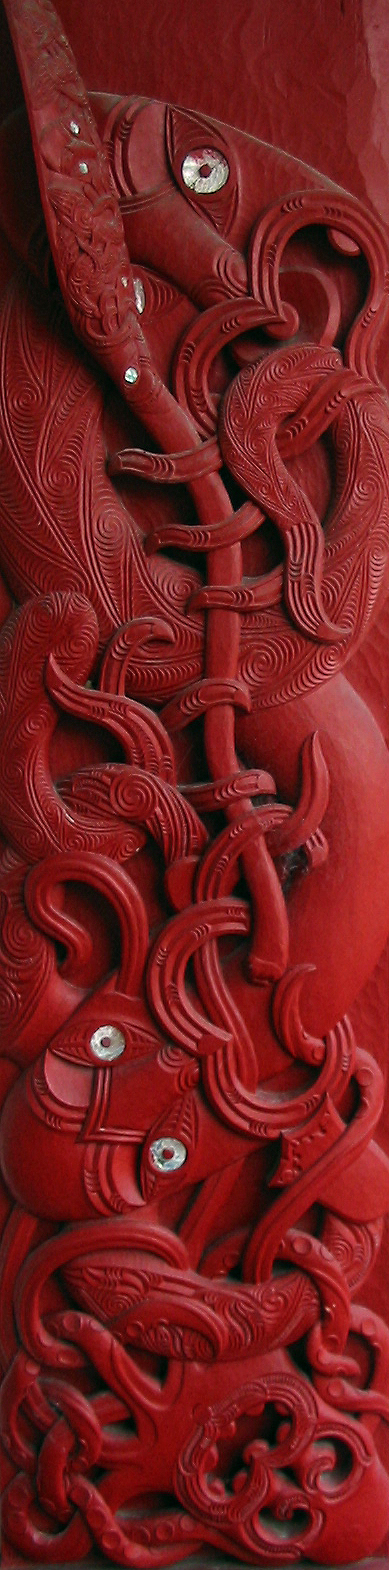 Maori carved house post from Tanenuiarangi meeting house, Waipapa marae.